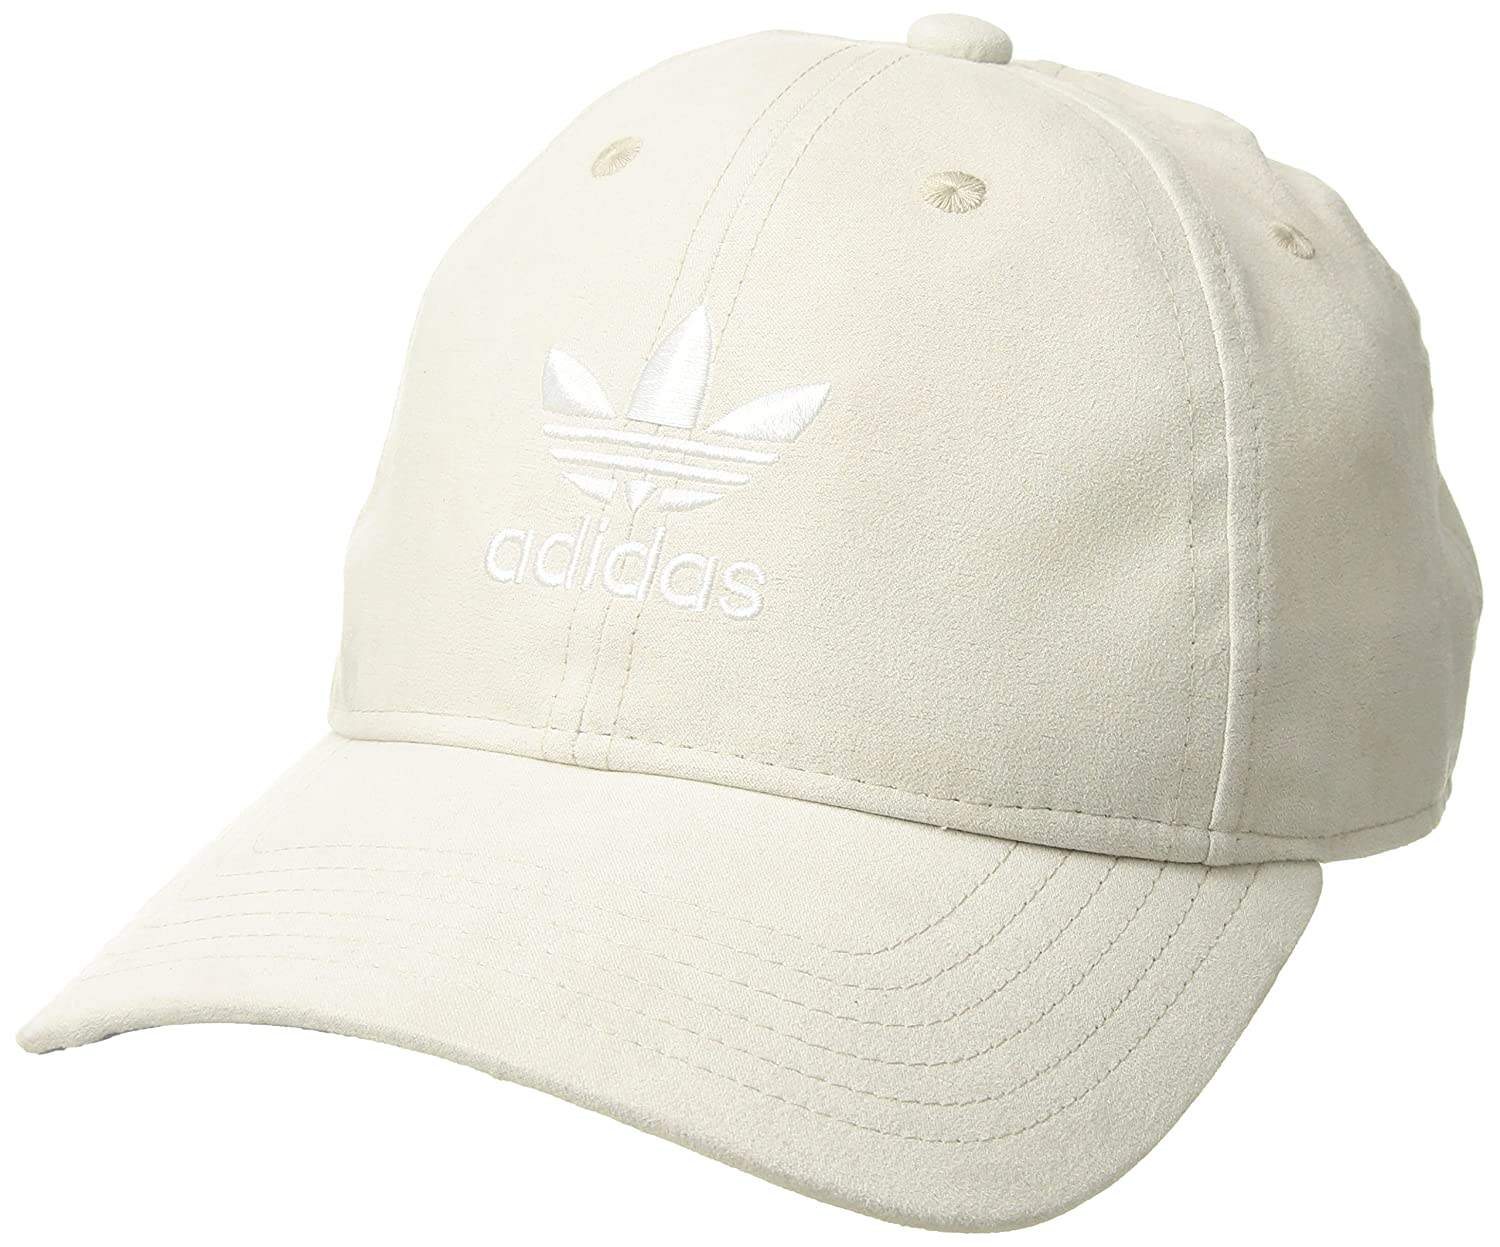 adidas Women's Originals Relaxed Plus Agron Hats & Accessories 976599